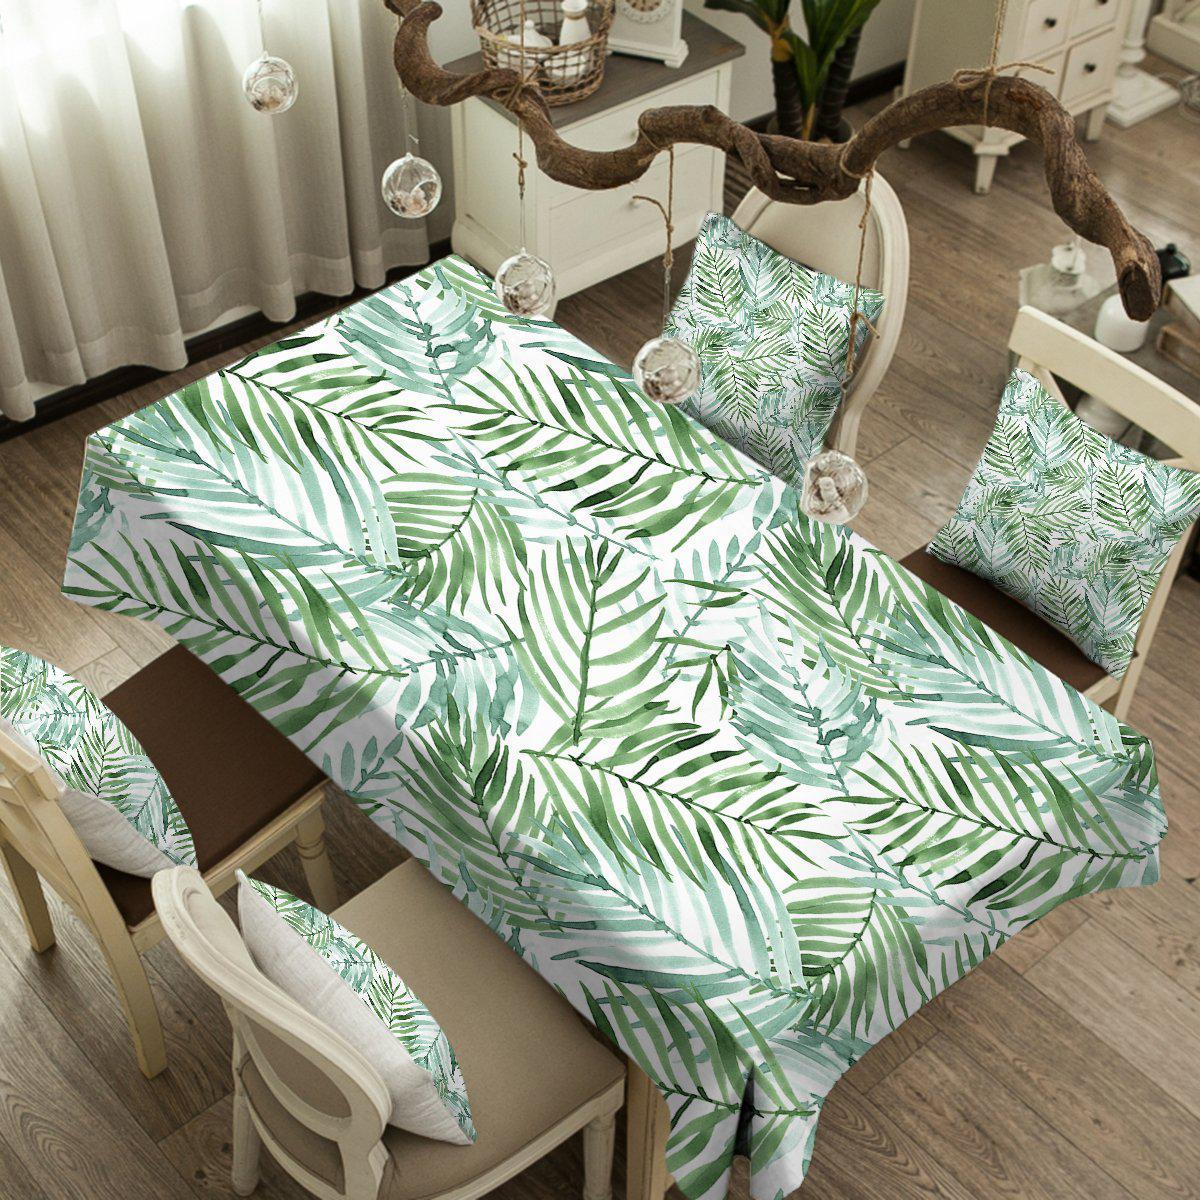 Tropical Palm Leaves Tablecloth-Coastal Passion